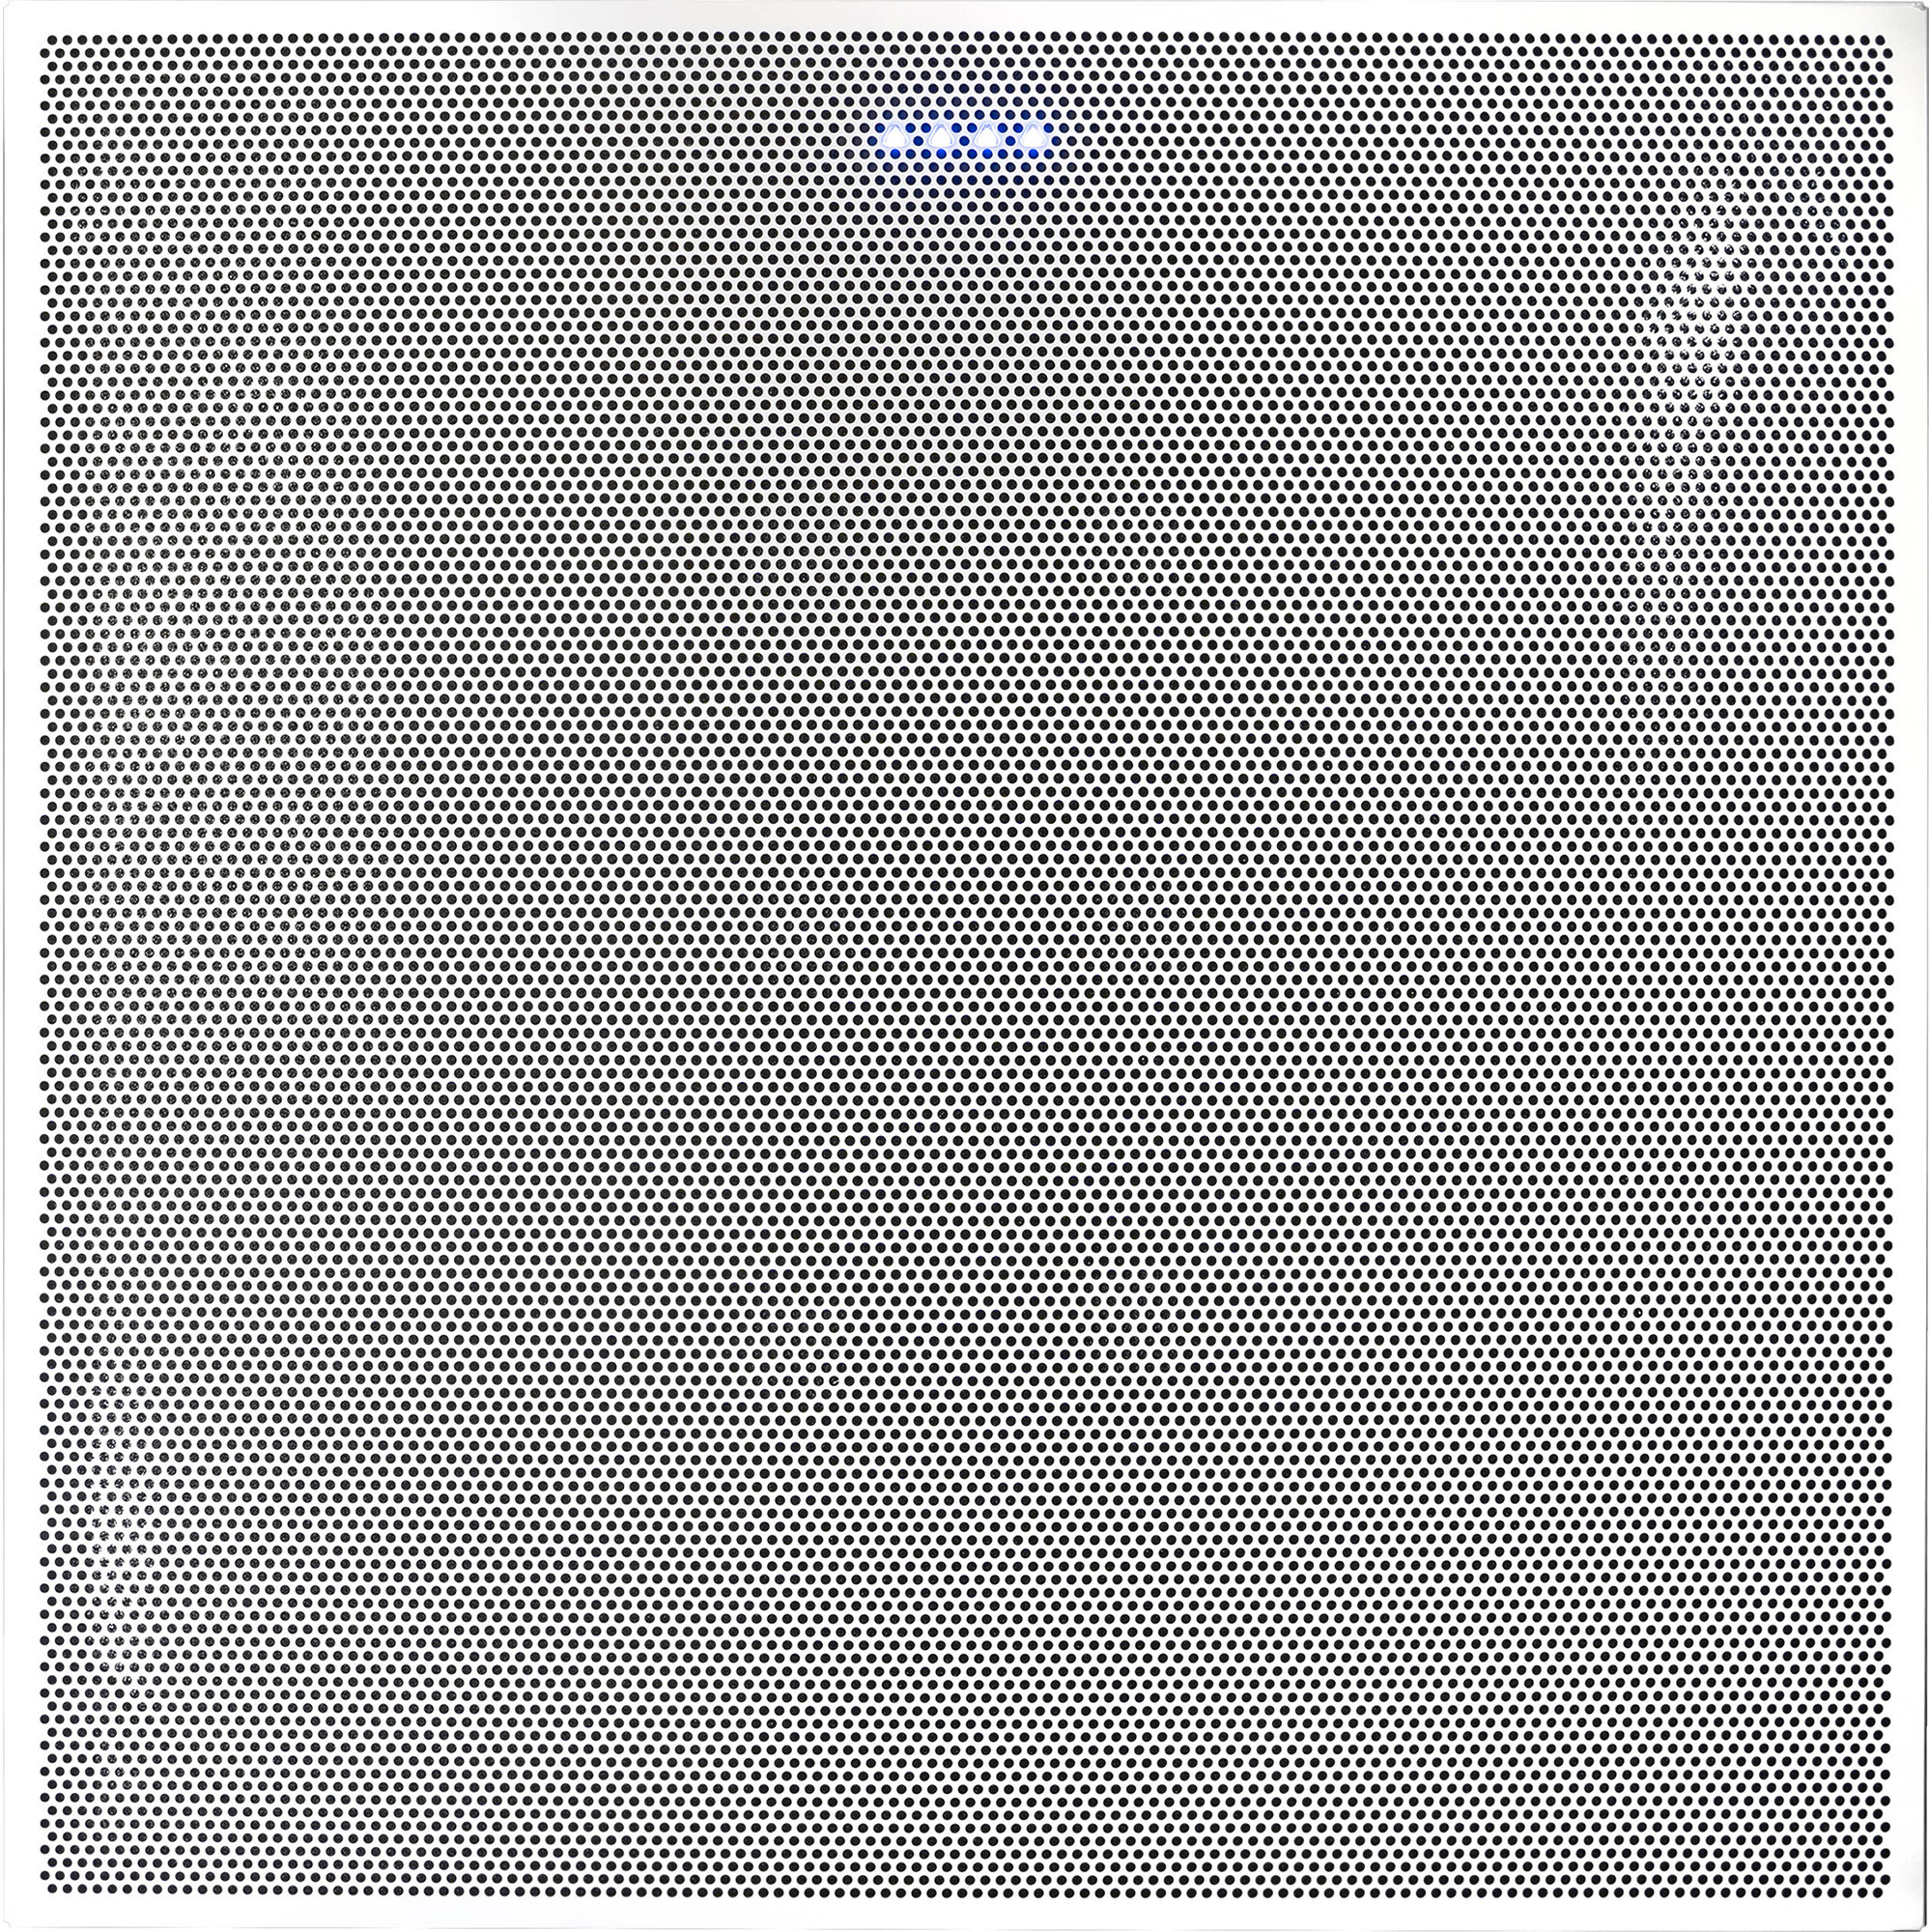 ClearOne 910-3200-205 Beamforming Microphone Array CT CL1-910-3200-205